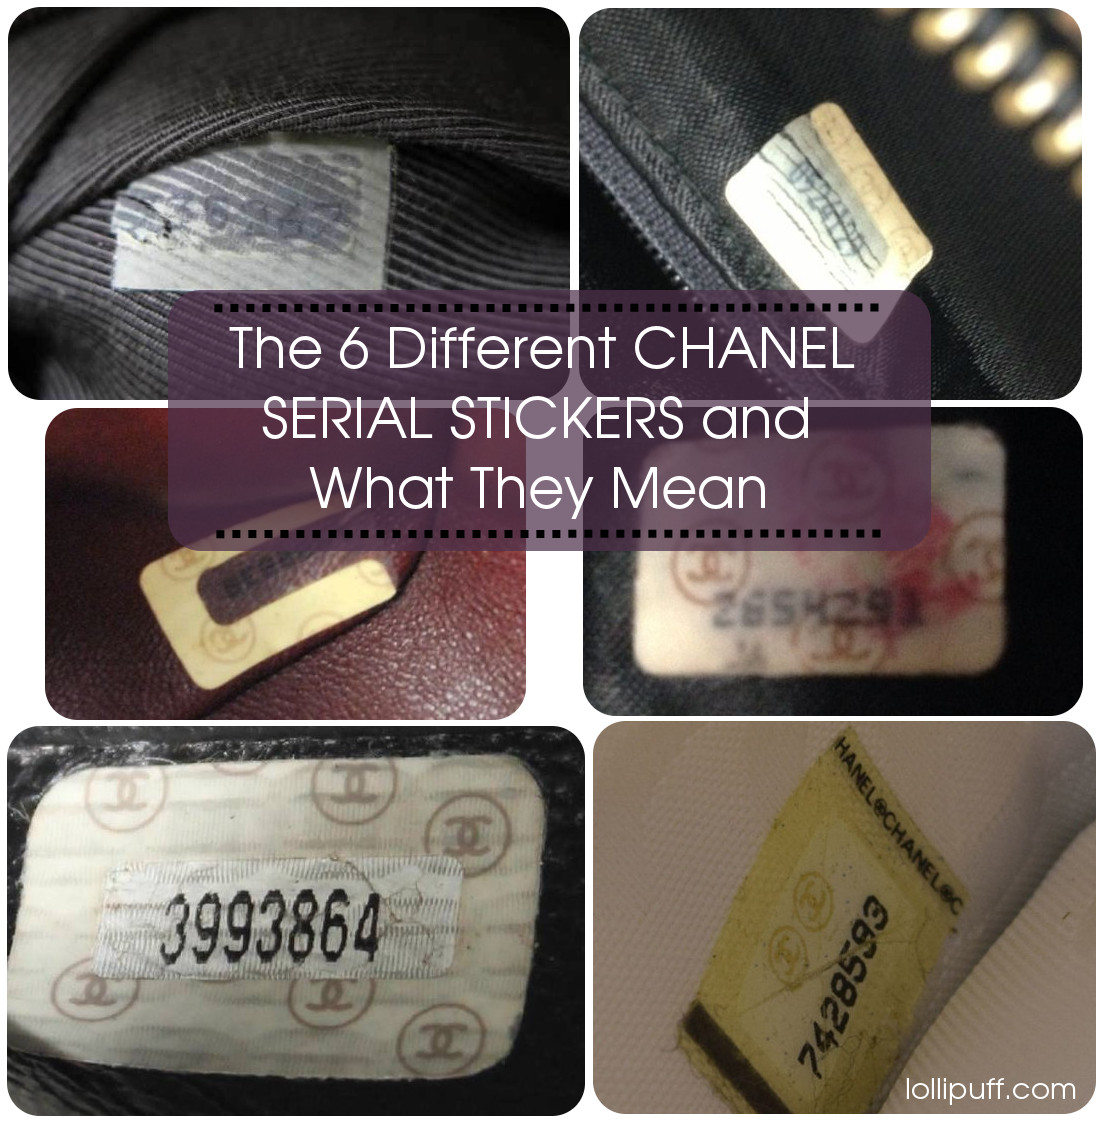 chanel serial sticker dating styles vintage modern